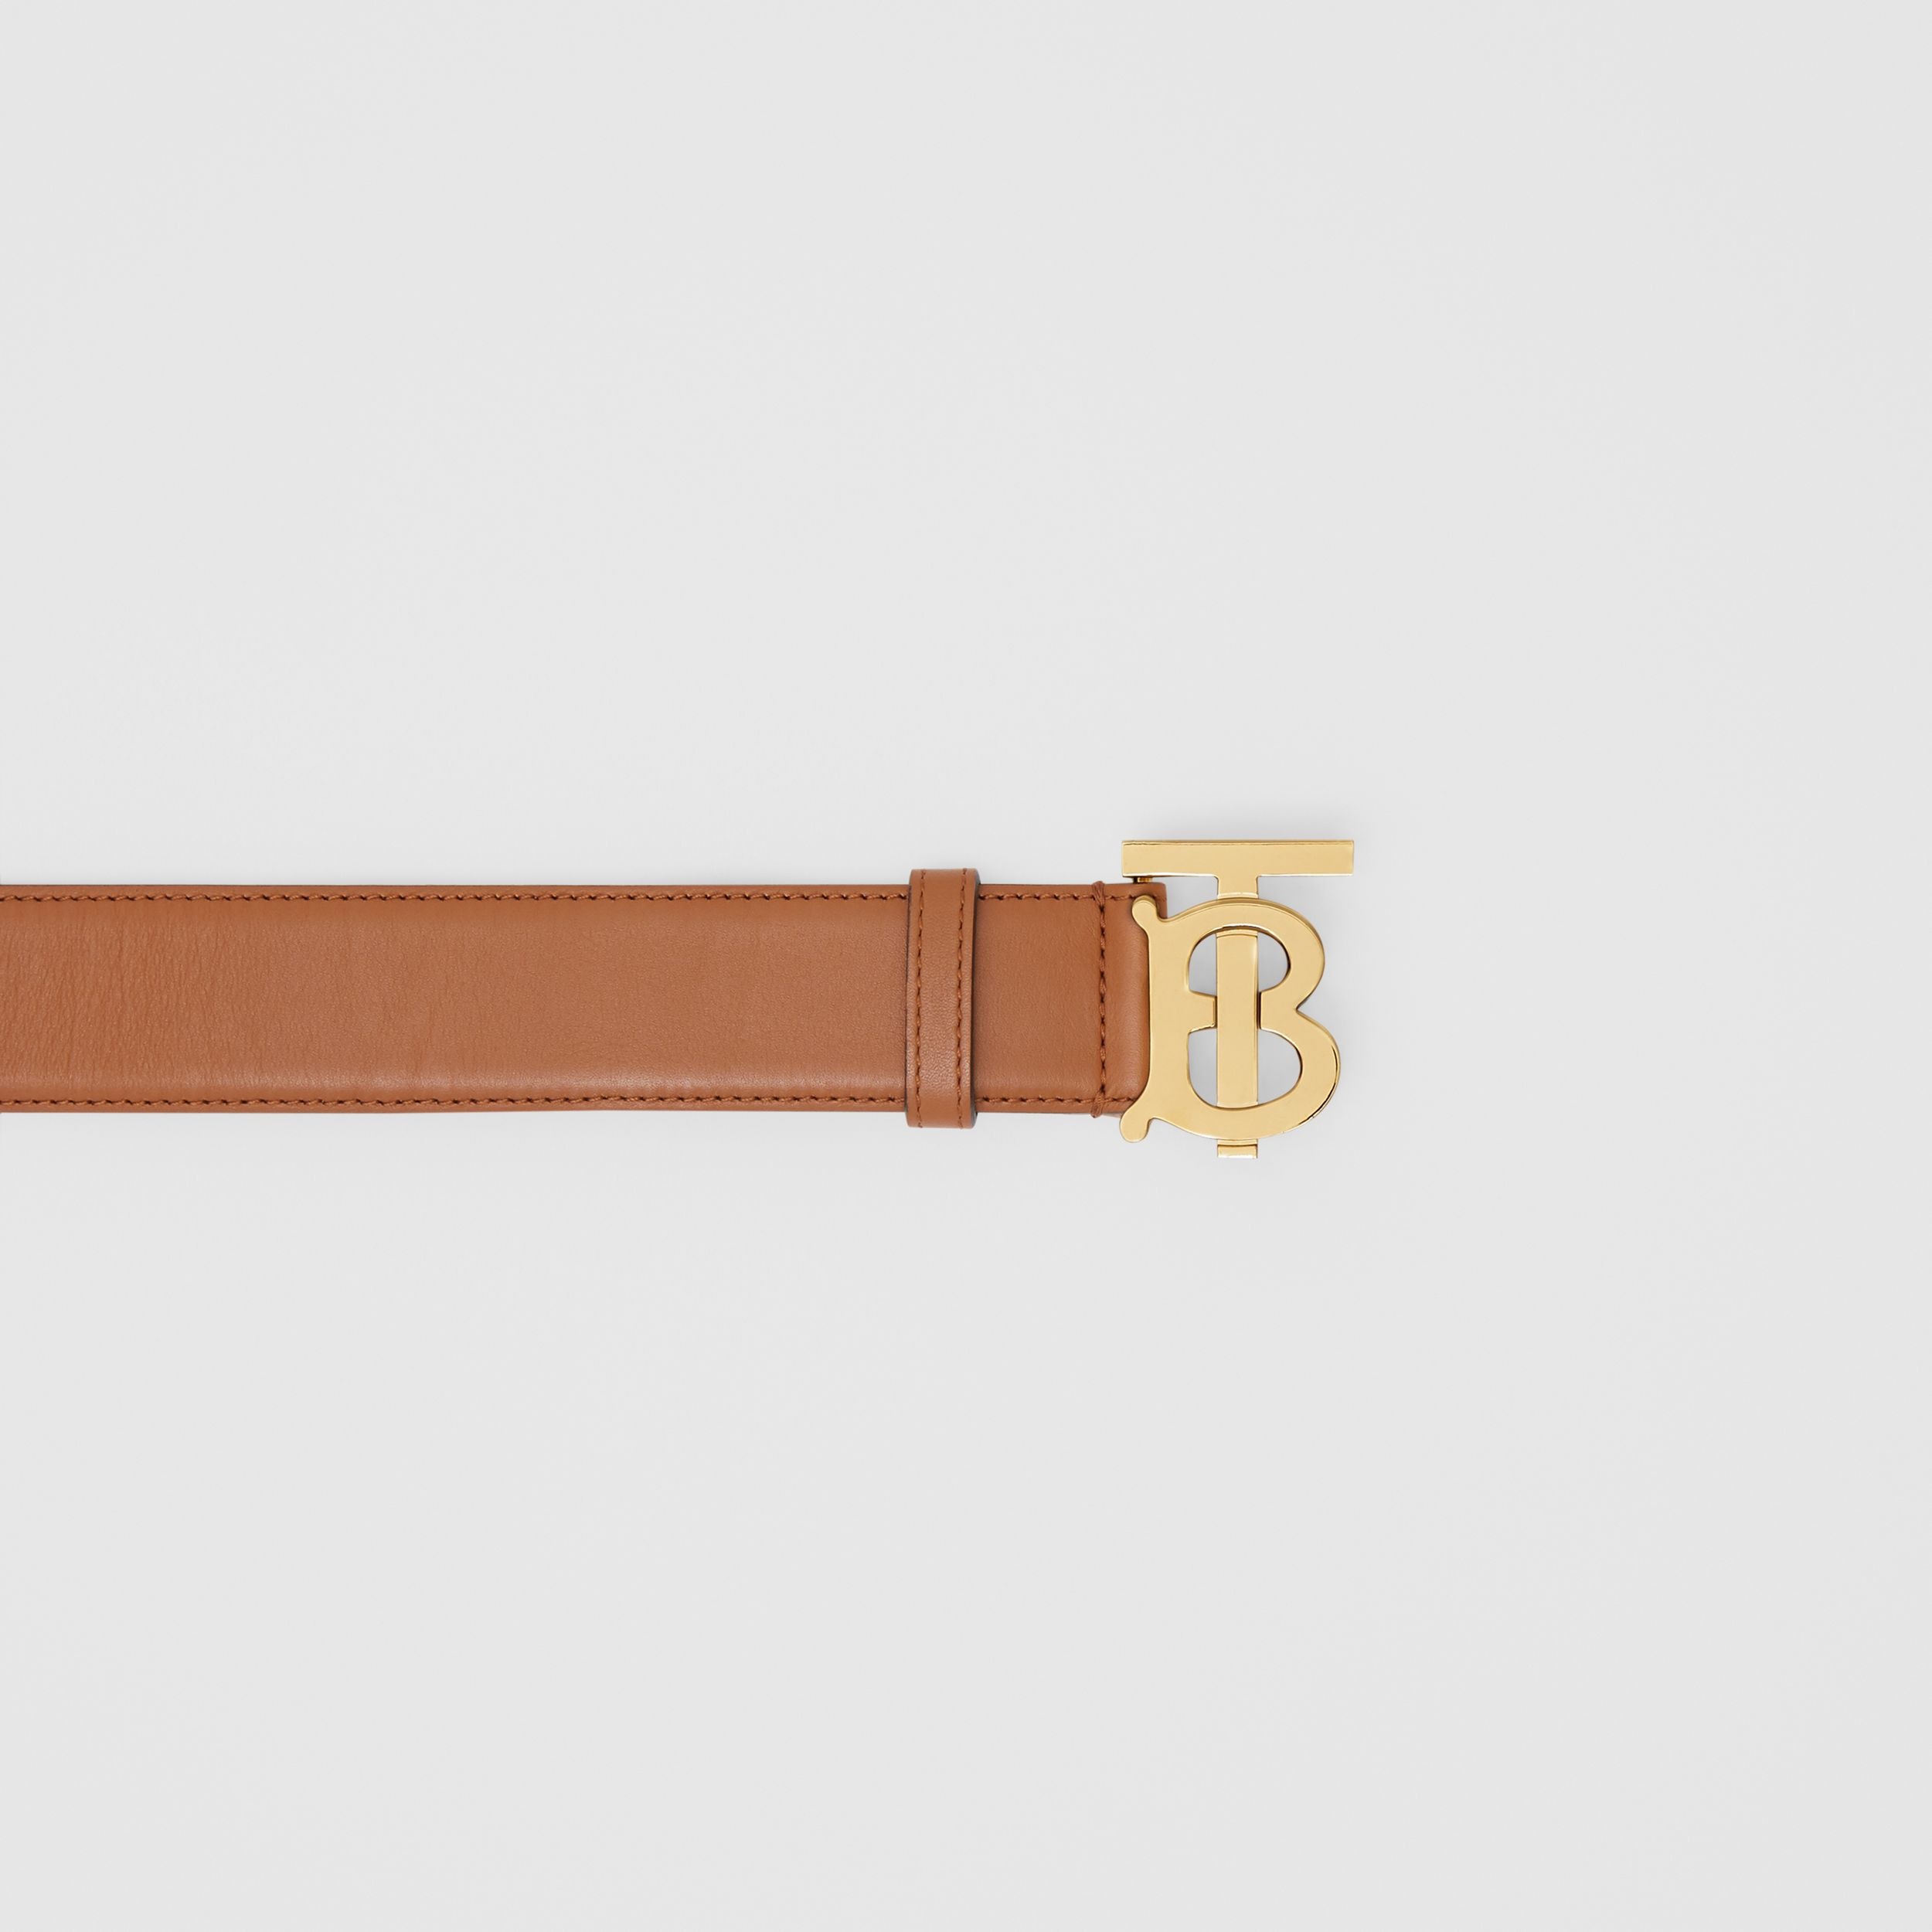 Monogram Motif Leather Belt in Tan - Women | Burberry - 2